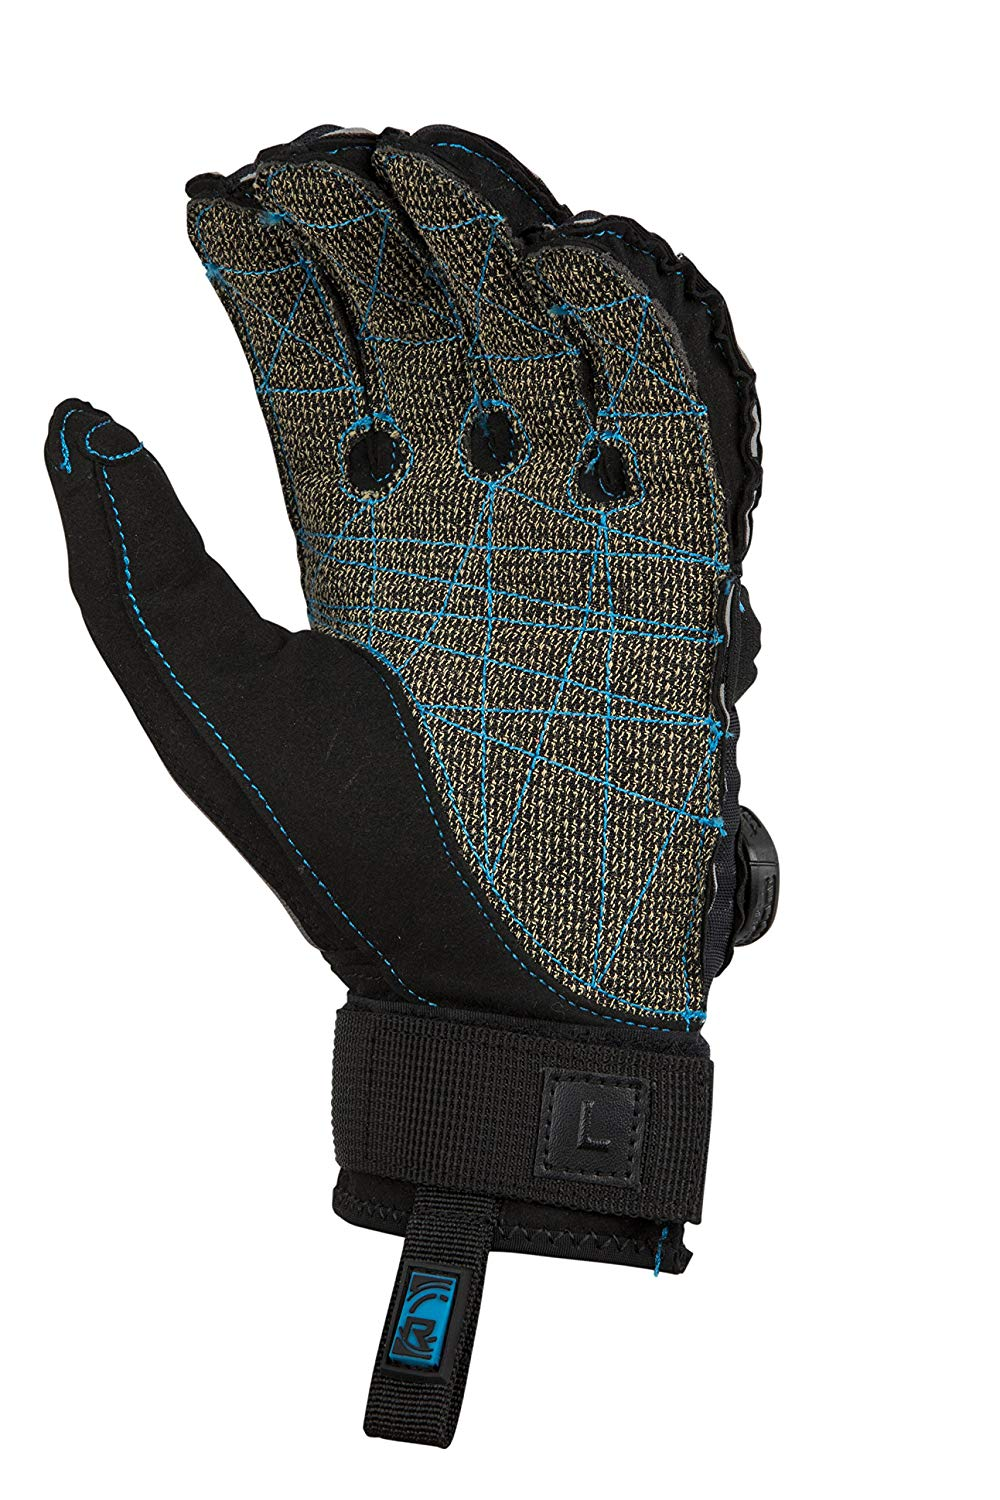 2019 Vapor - Boa-K - Inside-Out Glove